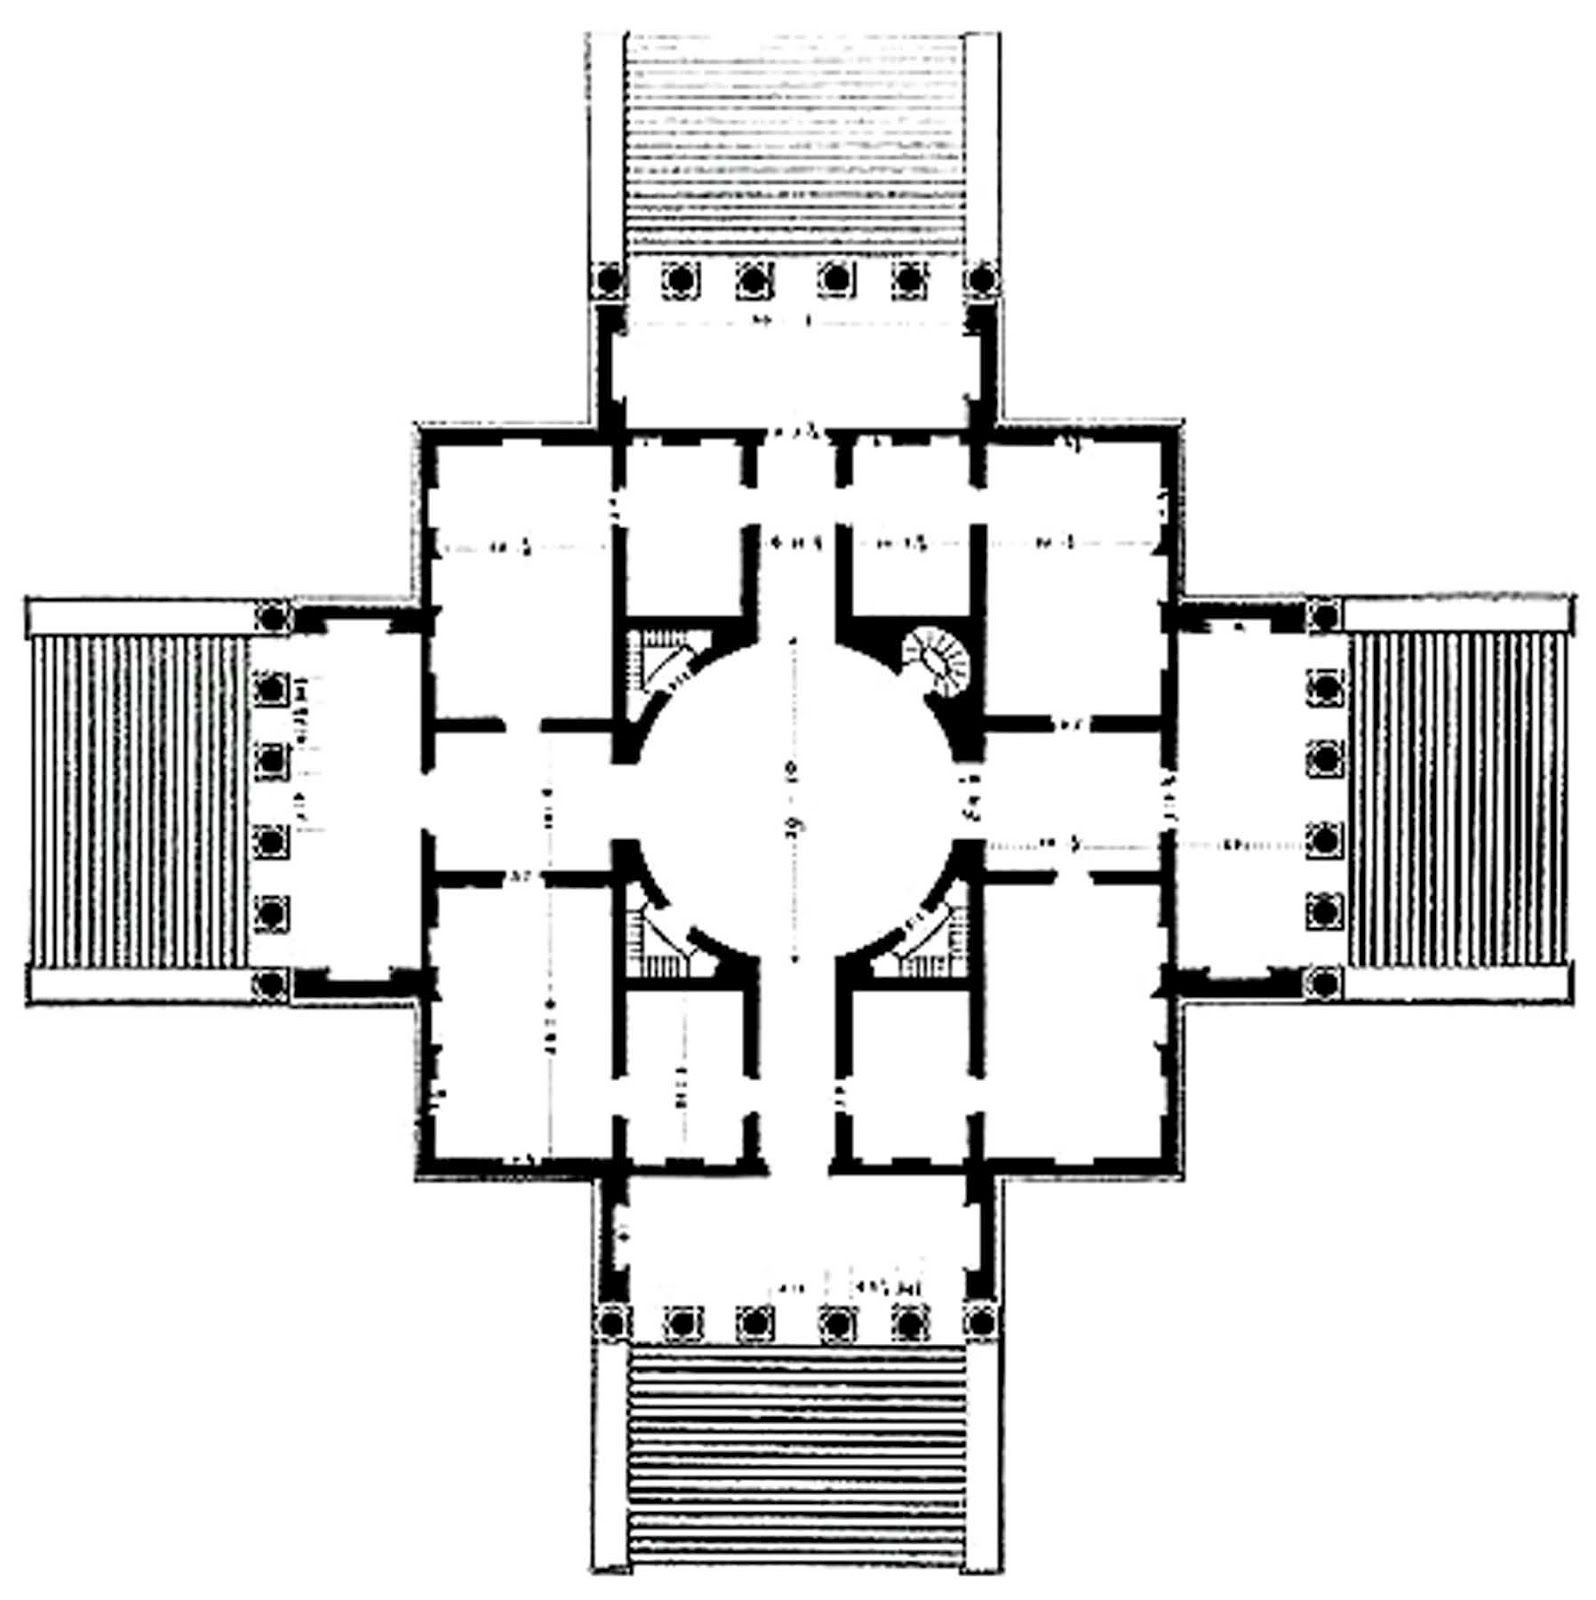 Palladio Villa Rotunda The Plan As A Centralised